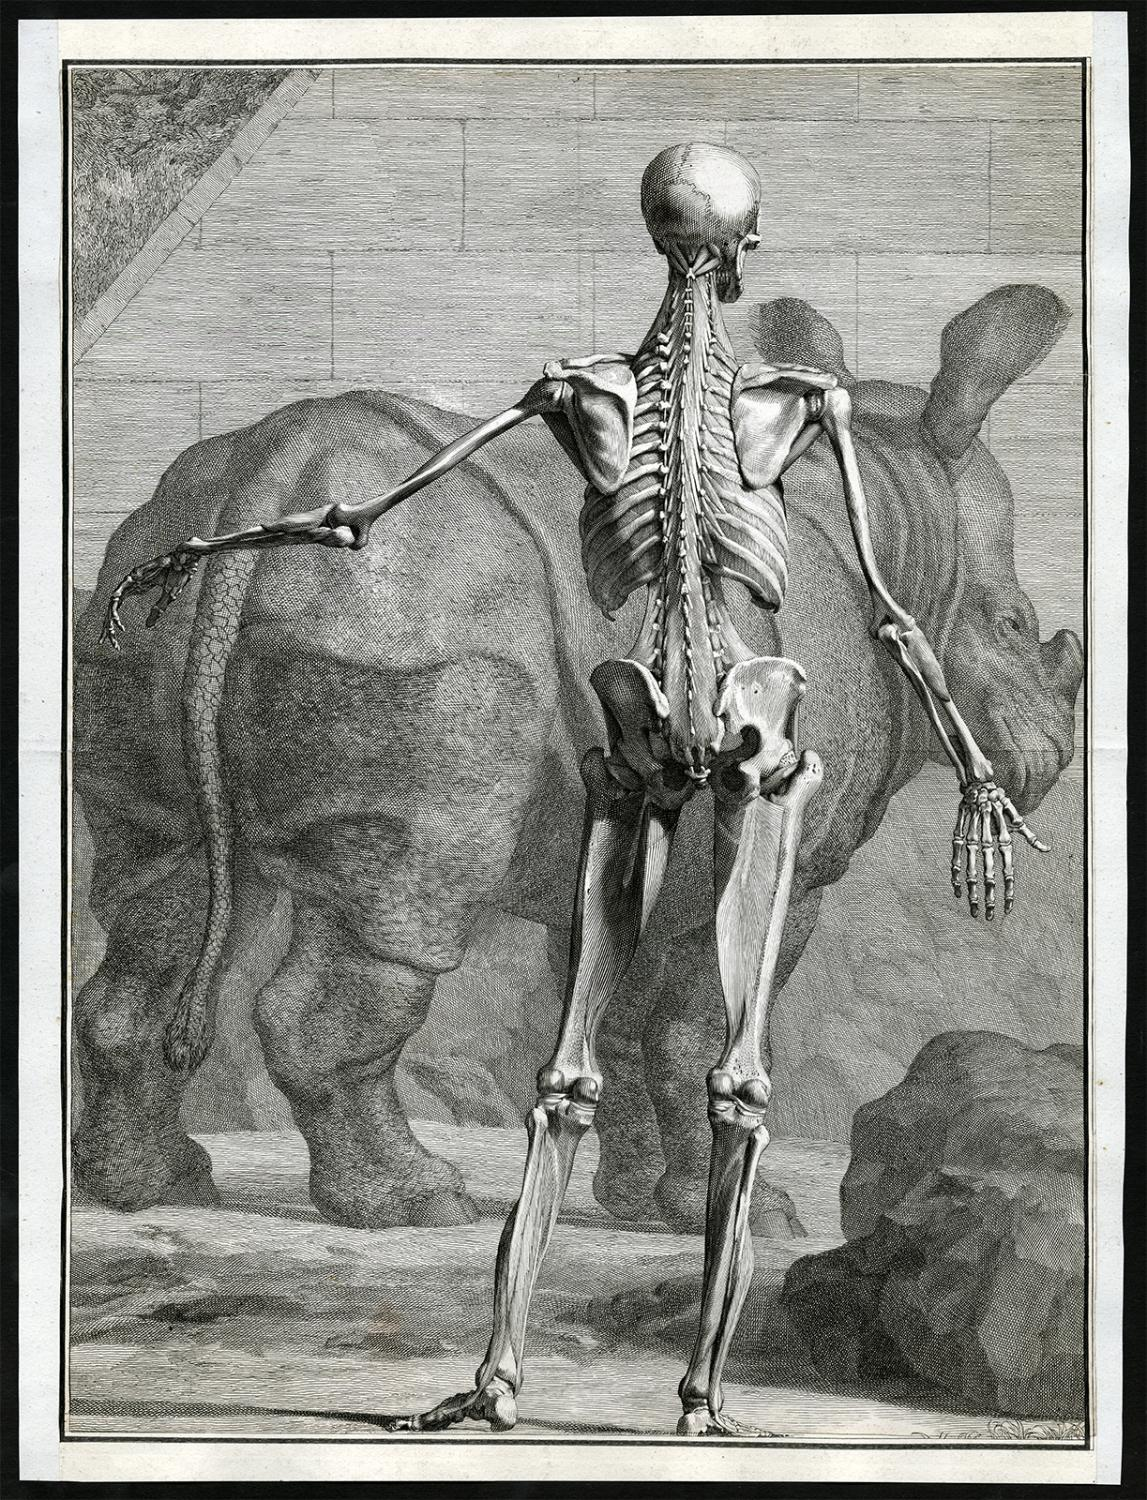 Rhinoceros an Antique Print - AbeBooks